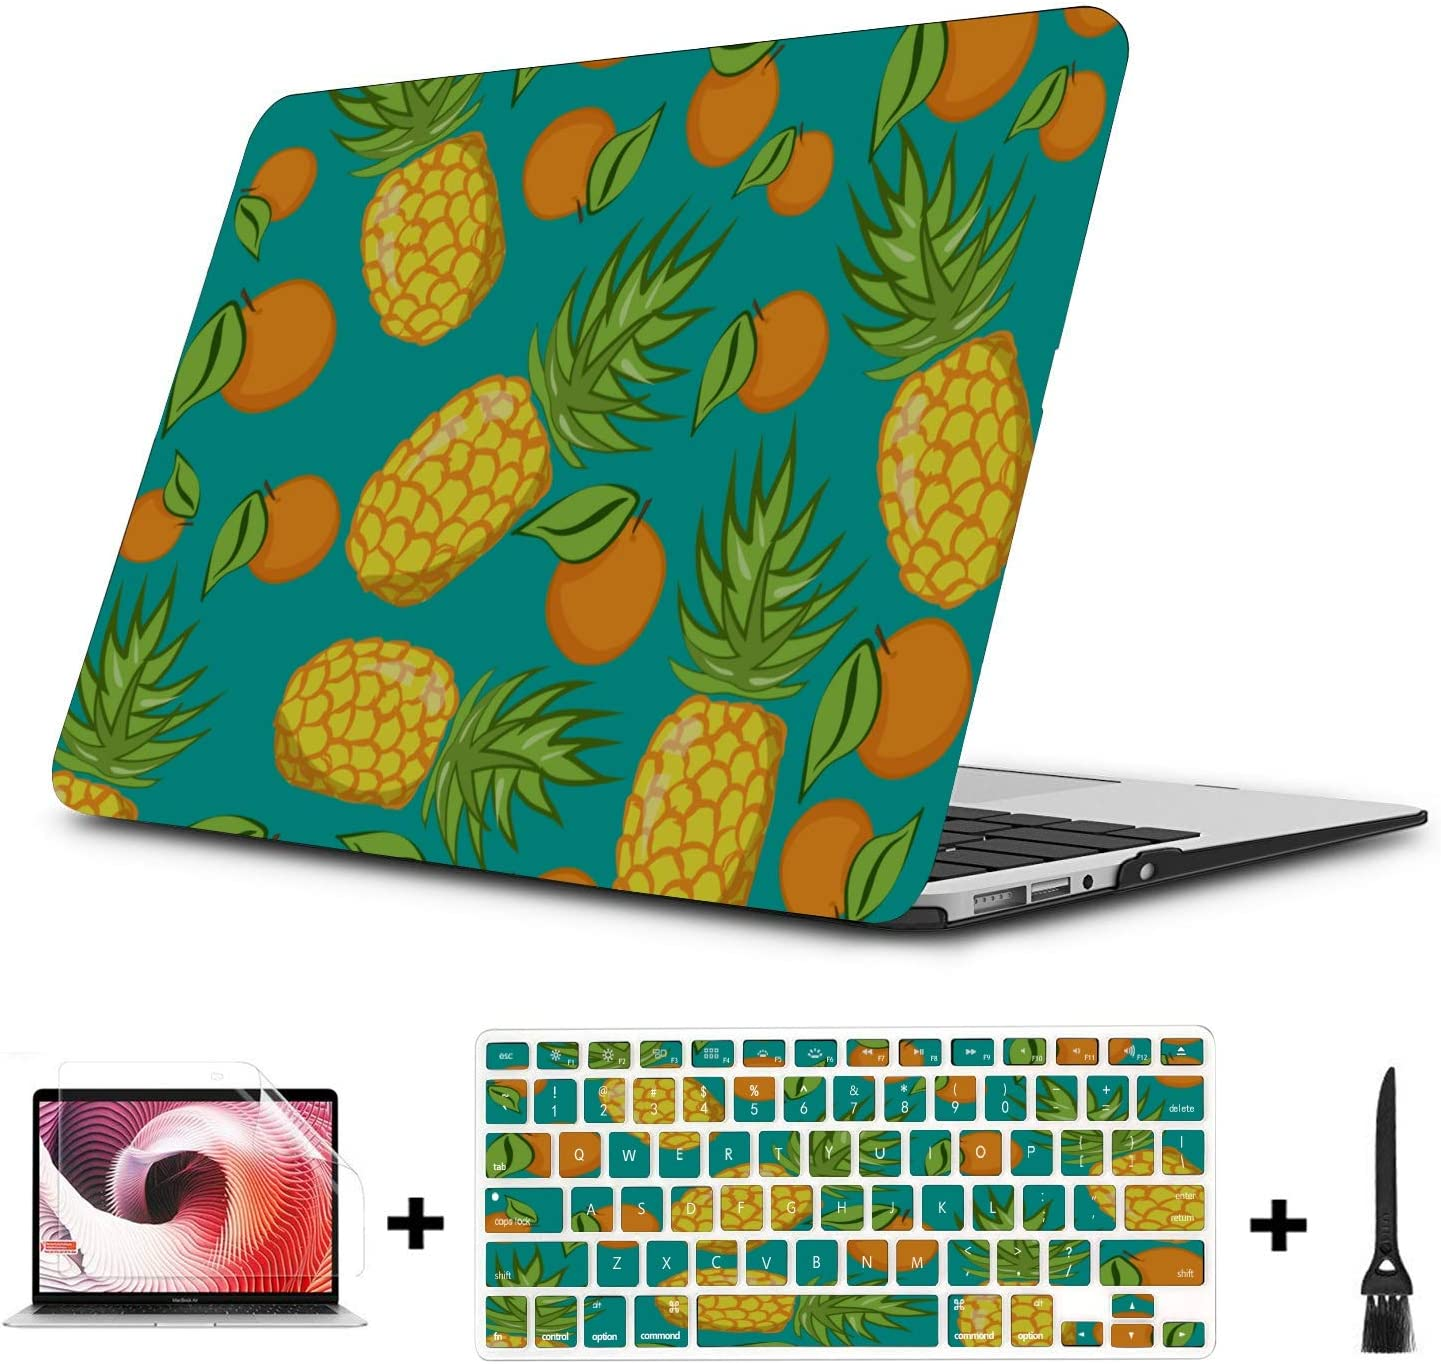 15inch MacBook Pro Case Summer Fashion Fruit Pineapple Plastic Hard Shell Compatible Mac Air 11 Pro 13 15 MacBook Air Case Protection for MacBook 2016-2019 Version